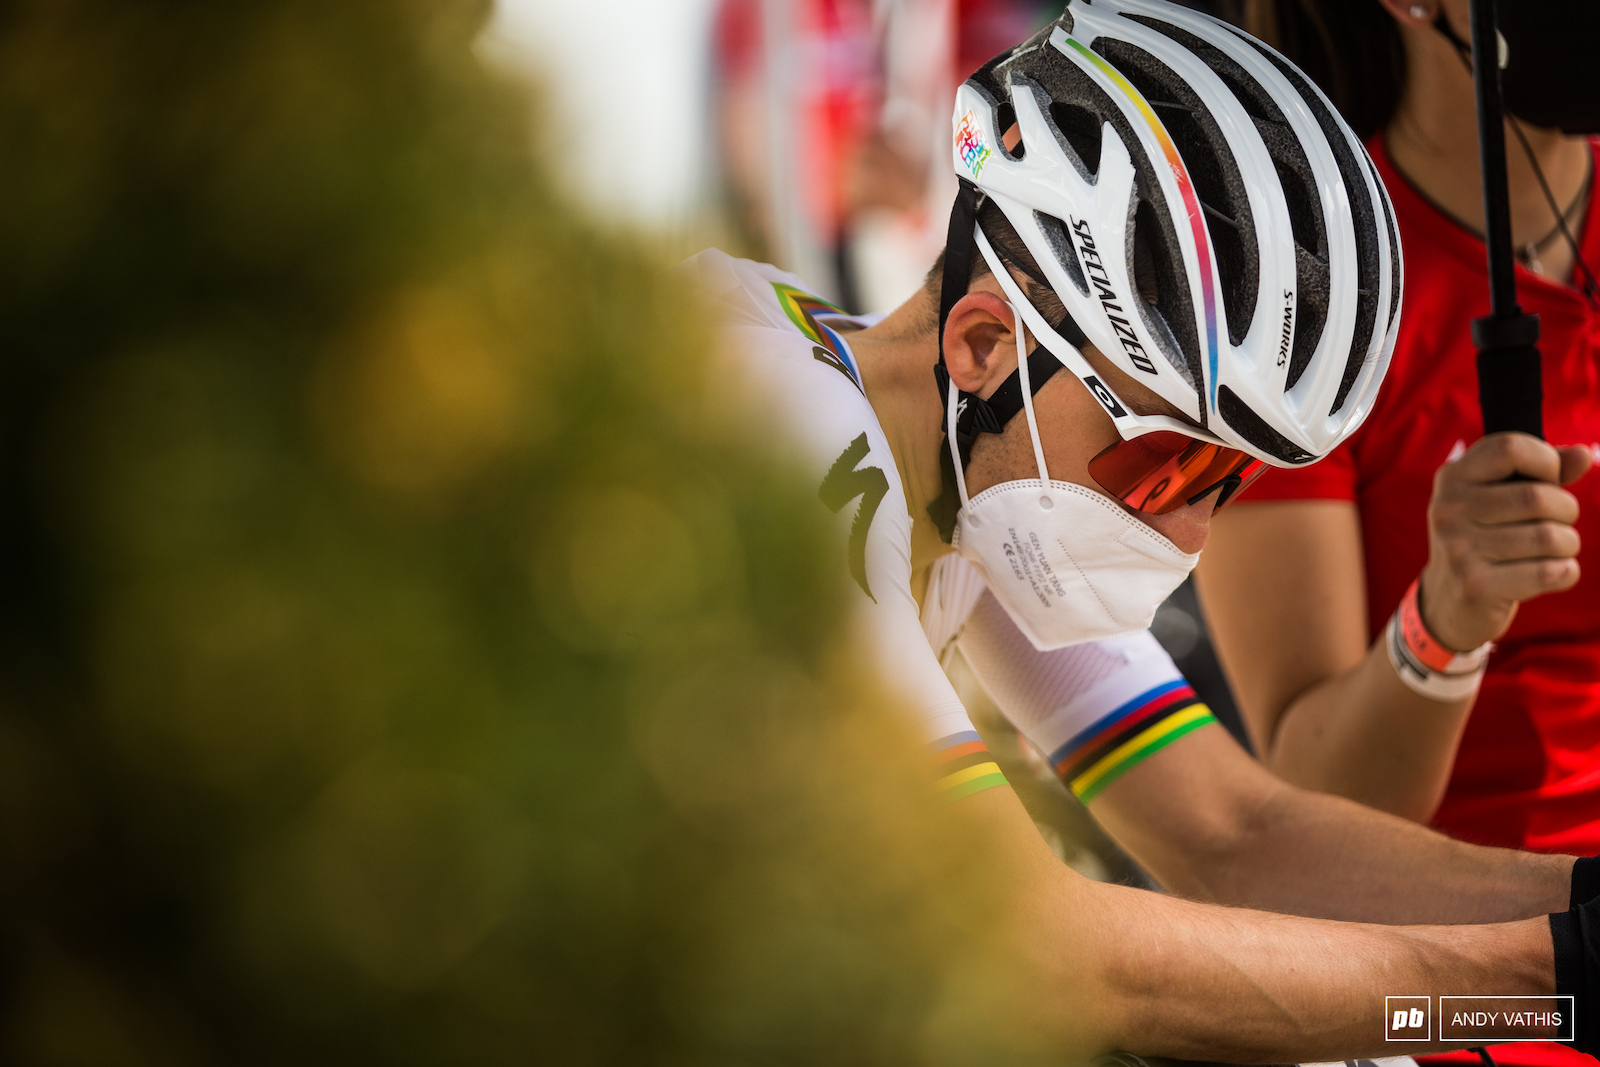 Jordan Sarrou looking to tap into that World Champs pace once again.